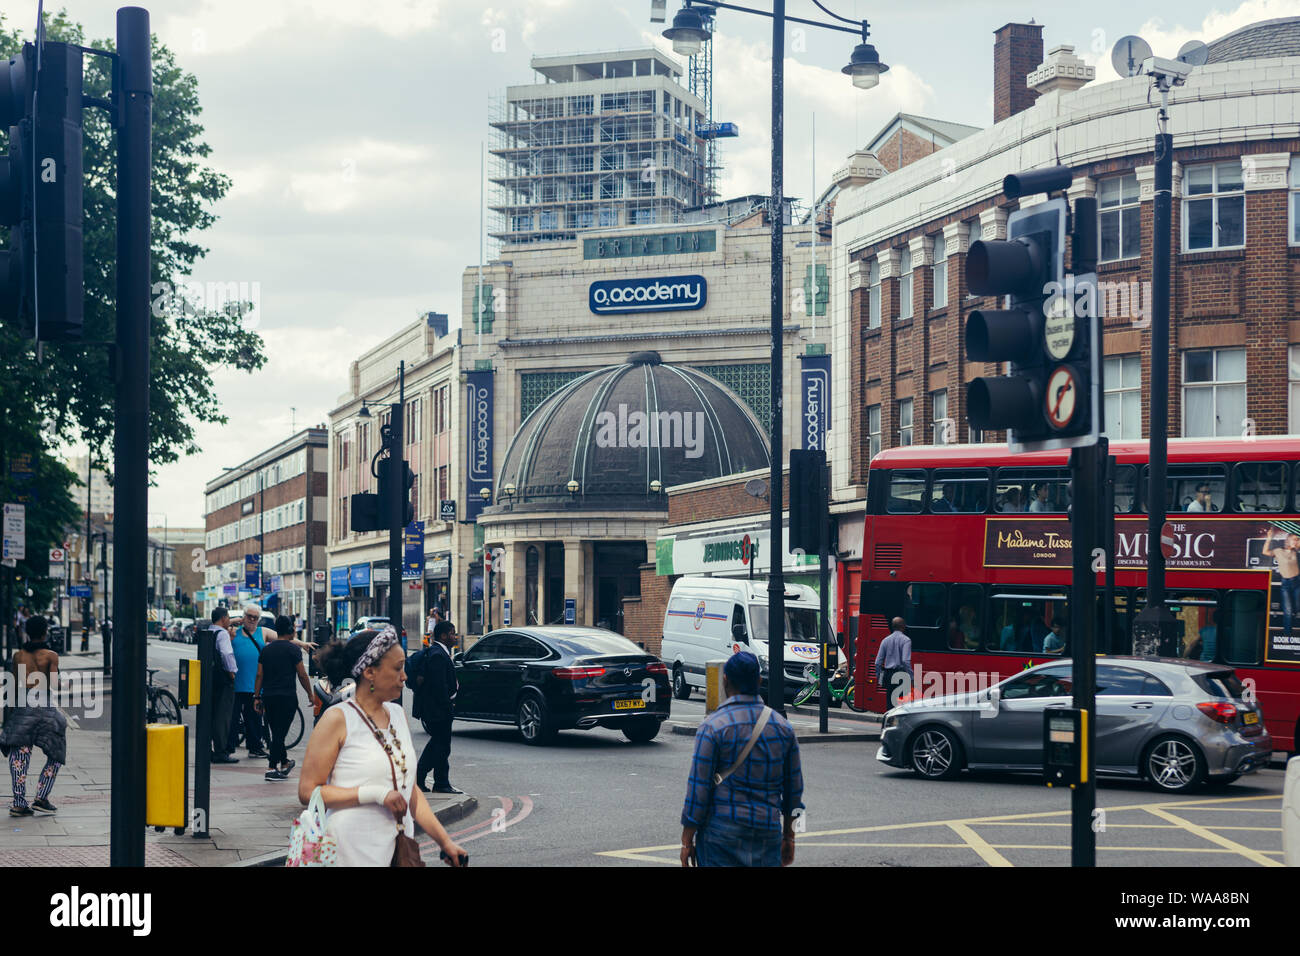 London/UK - July 16, 2019: The O2 Brixton Academy viewed from the Brixton Road. The O2 Academy is one of London's leading music venues, nightclubs and Stock Photo